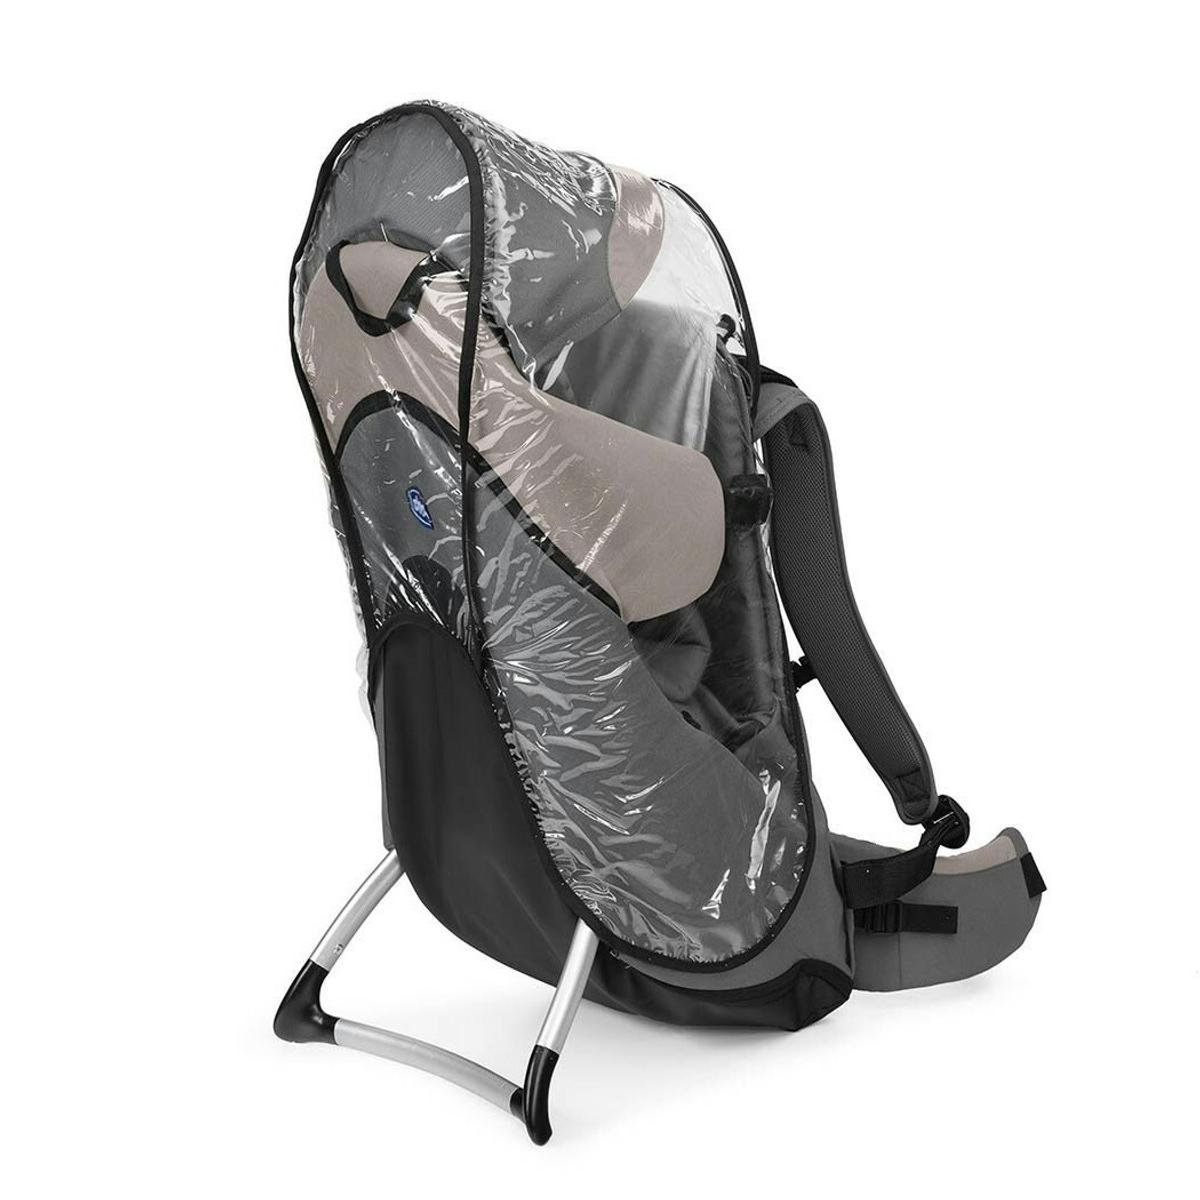 9c5654e7b33 Chicco Finder baby carrier   backpack in S20 Sheffield for £45.00 for sale  - Shpock